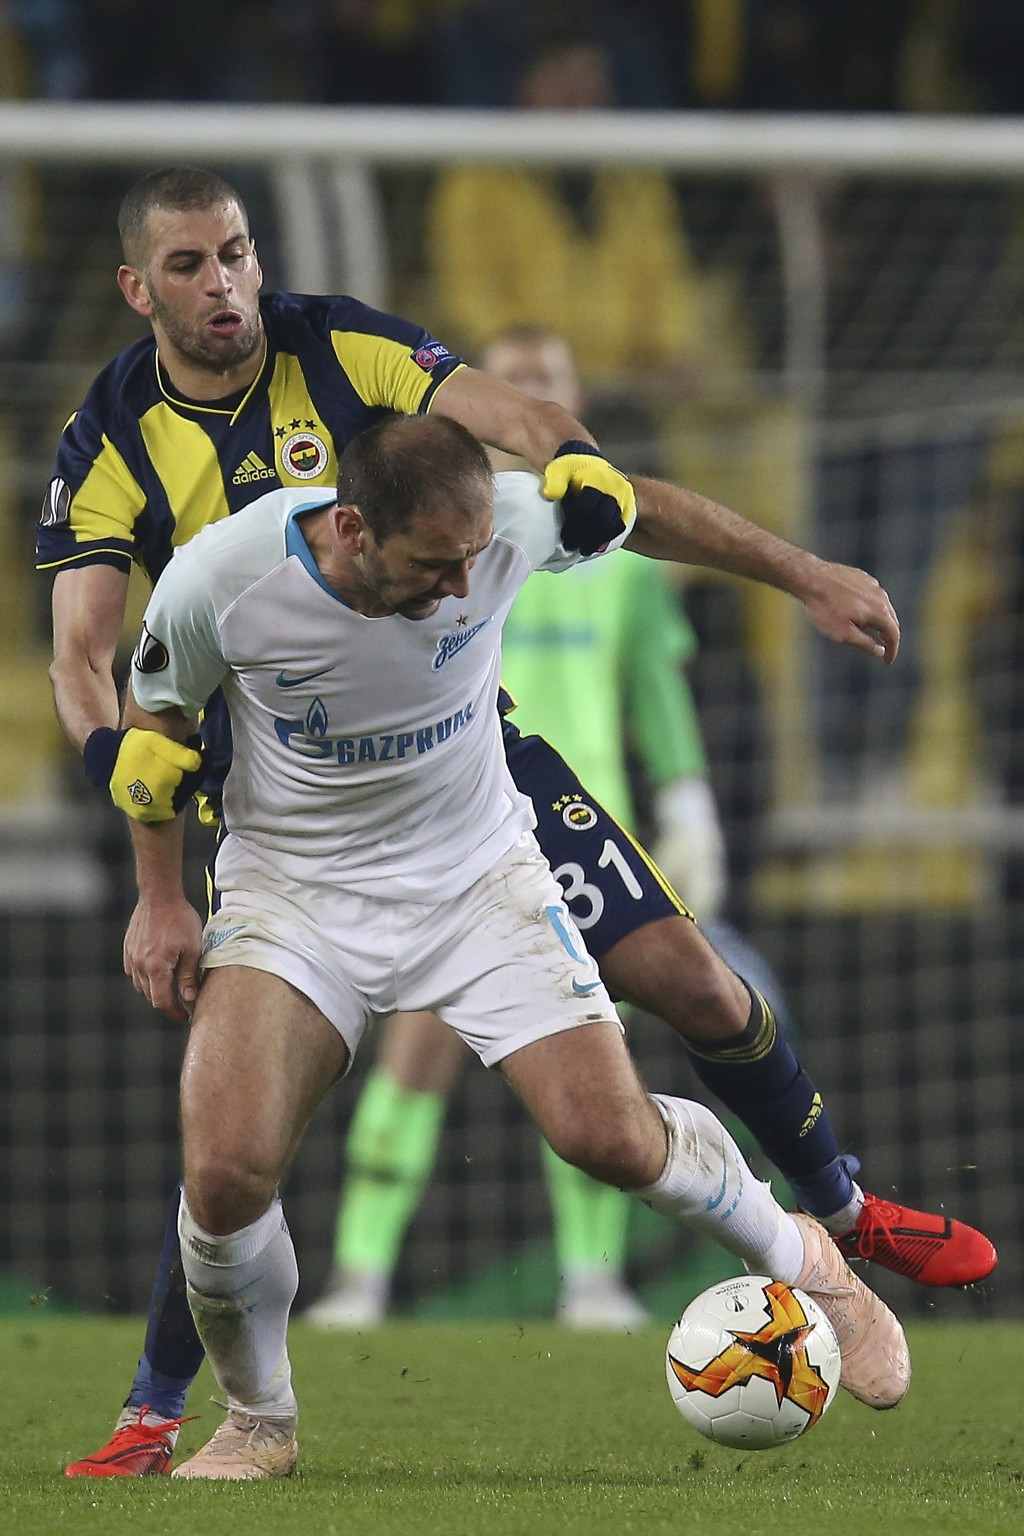 Fenerbahce's Islam Slimani, rear, fights for the ball with Zenit St. Petersburg Branislav Ivanovic during the Europa League round of 32 soccer match b...